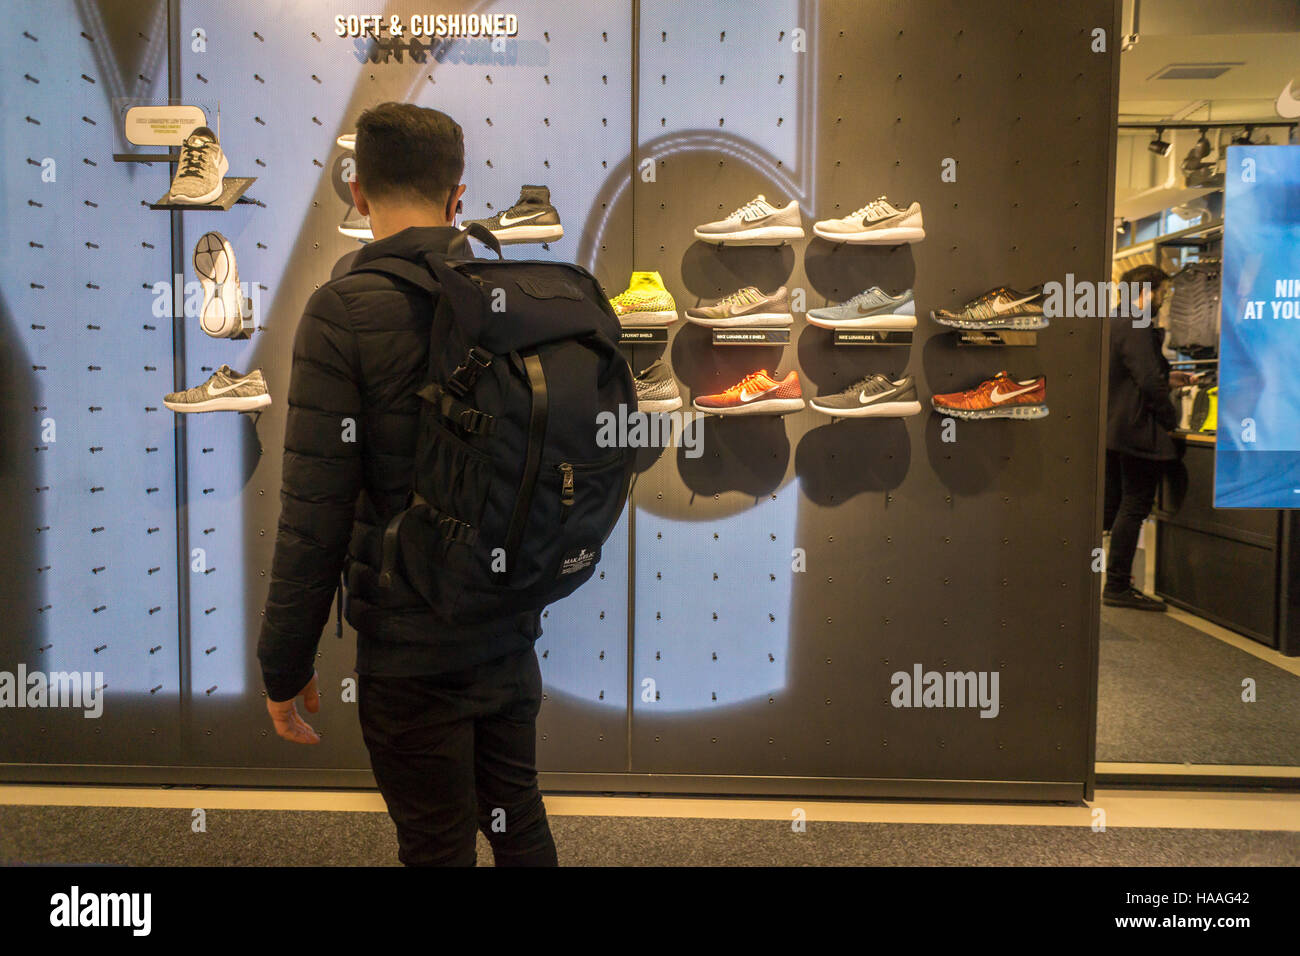 Athletic Shoe Store Stock Photos & Athletic Shoe Store Stock Images ...